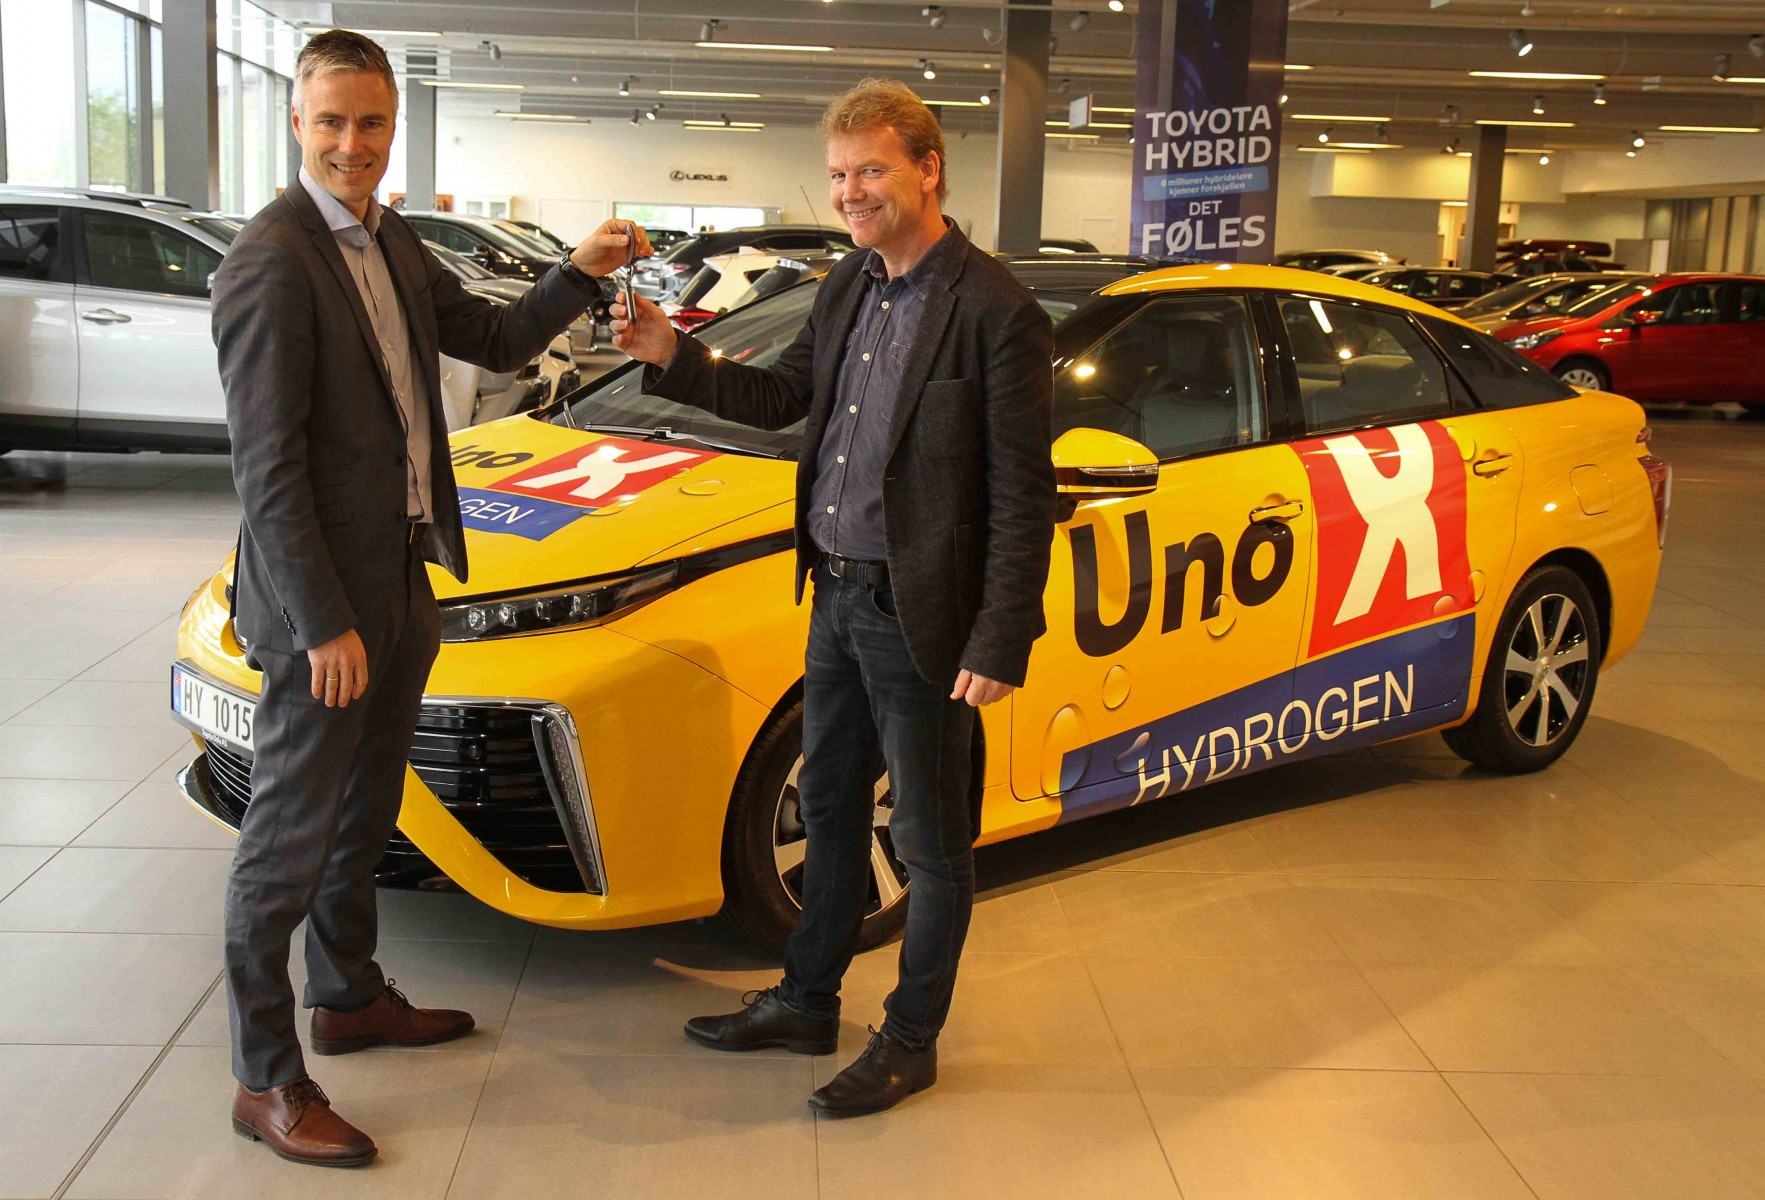 First Toyota Mirai delivered to Uno-X Hydrogen in Norway ( left: Espen Olsen, Toyota, right: Roger Hertzenberg, Uno-X Hydrogen)